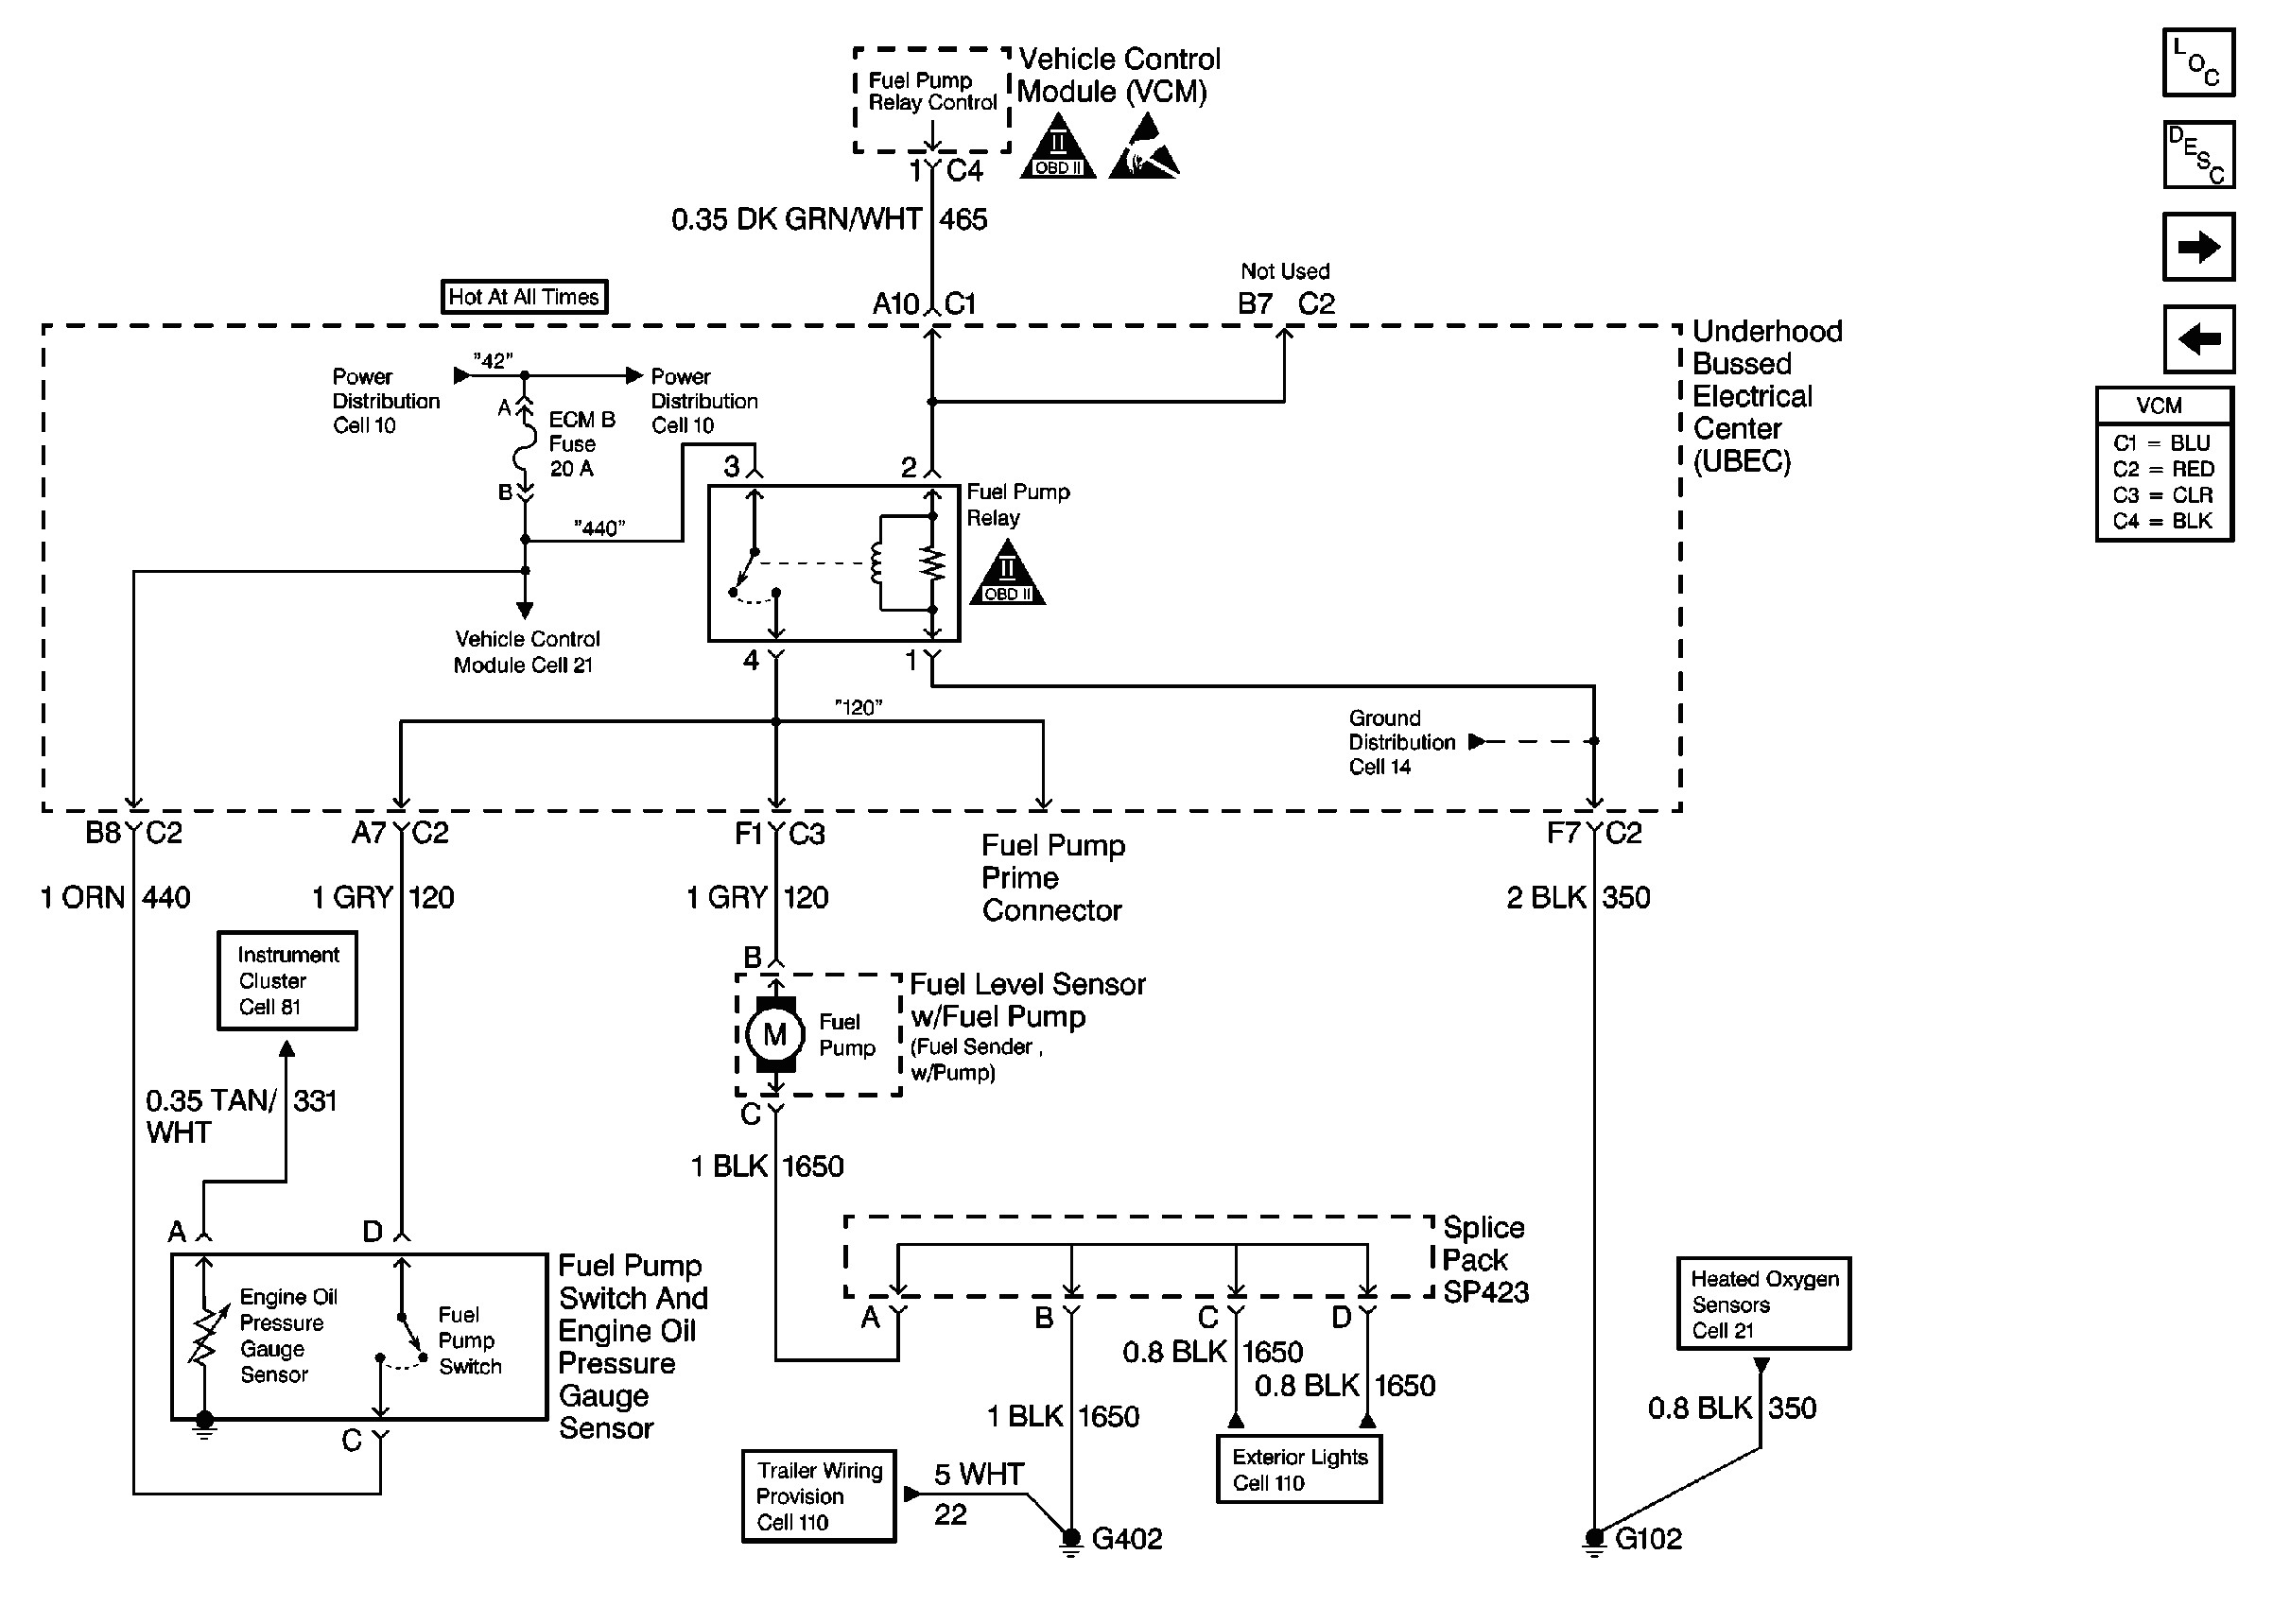 electric fuel pump wiring diagram Download-Awesome Fuel Pump Wiring Harness Diagram Diagram Gm Fuel Pump Wiring Diagram Collection 18-s